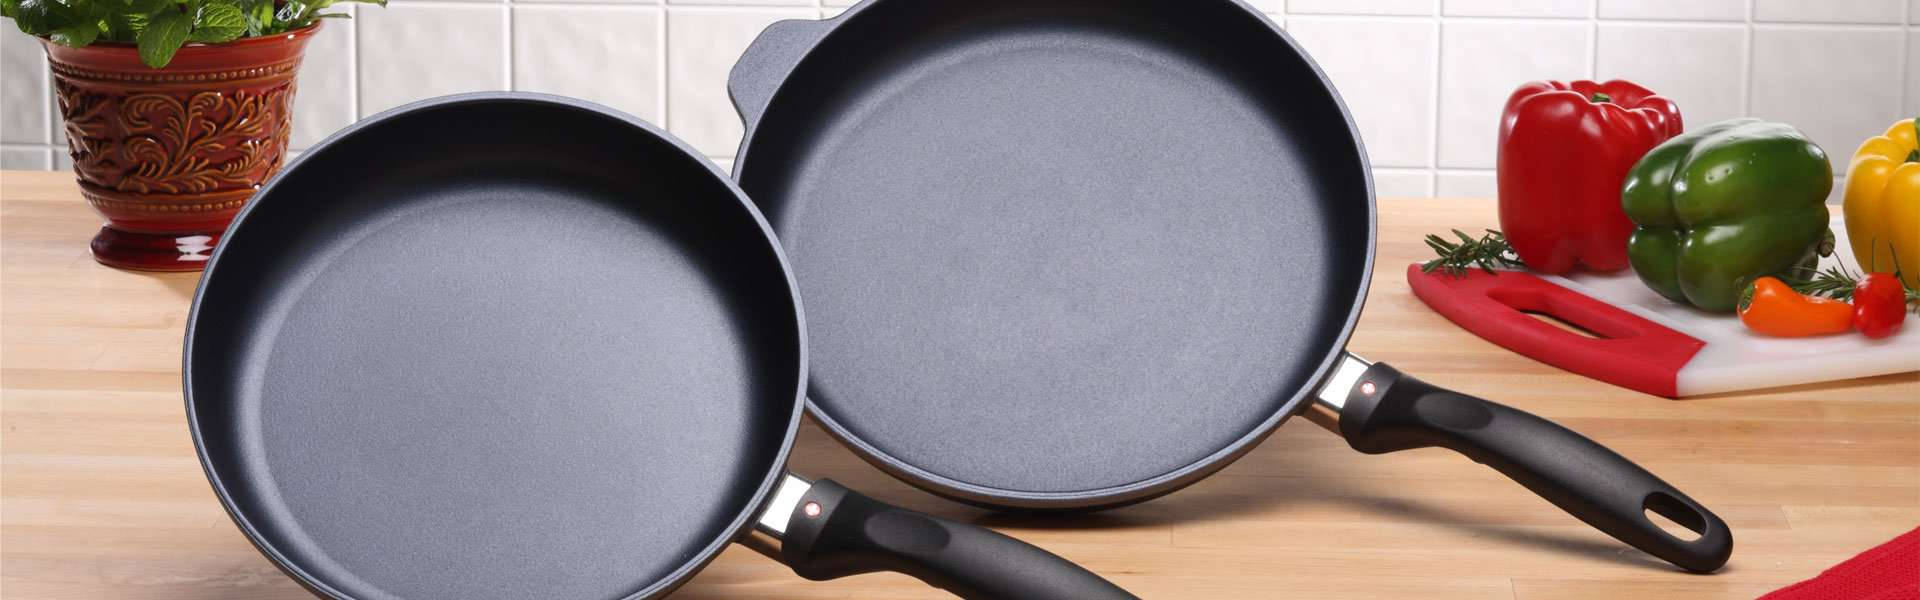 Best Pans For 2019 – Comprehensive Buyer's Guide and Reviews